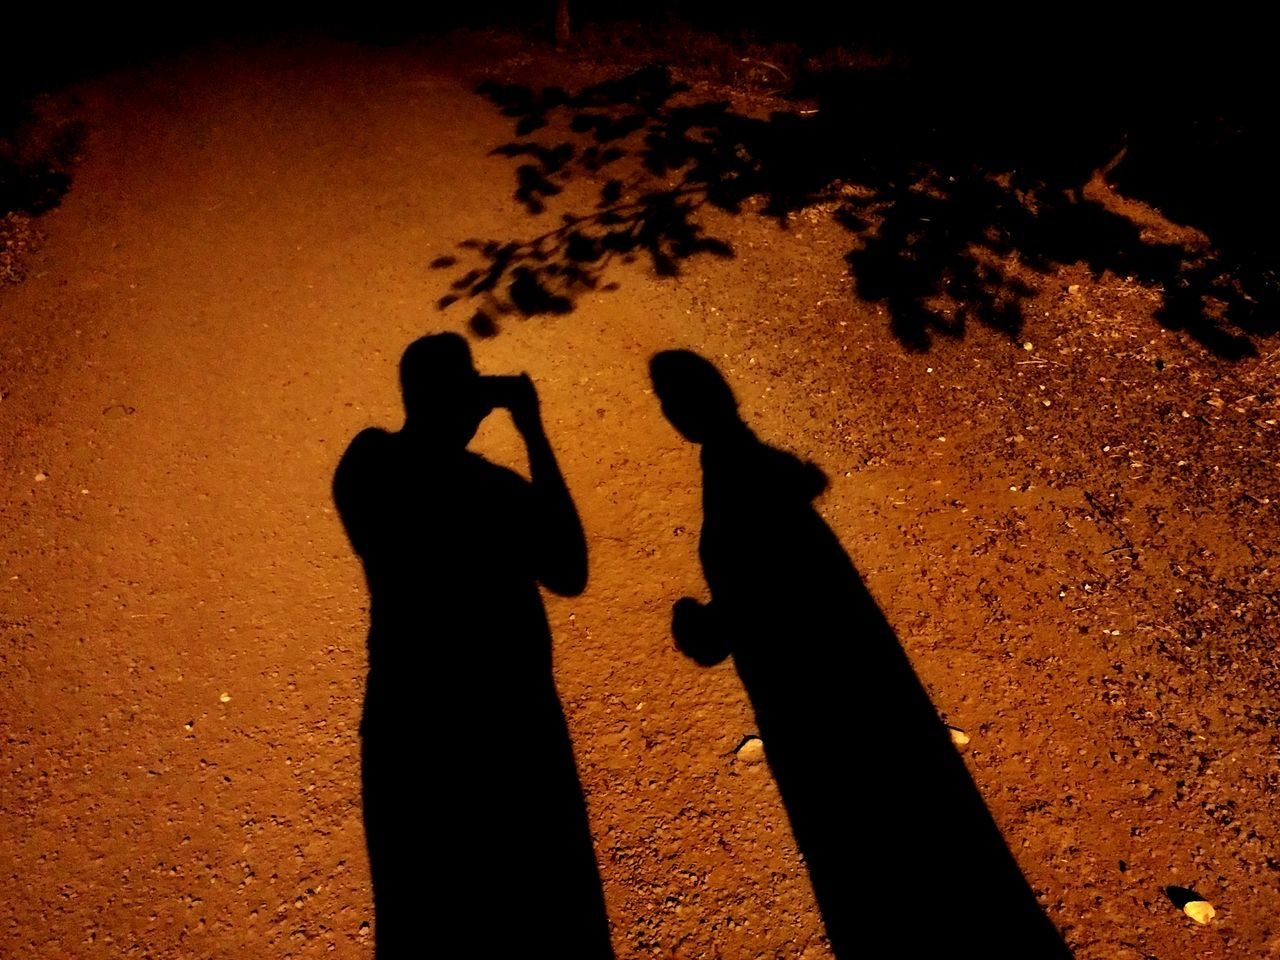 Urban 4 Filter Shadow Real People Focus On Shadow Two People Outdoors Togetherness Bonding Tree Shadow Leaves Shadow Smartphone Photography Moto G4 Plus Couples❤❤❤ Lowlight Photography Love♥ Indians  Shadow-art